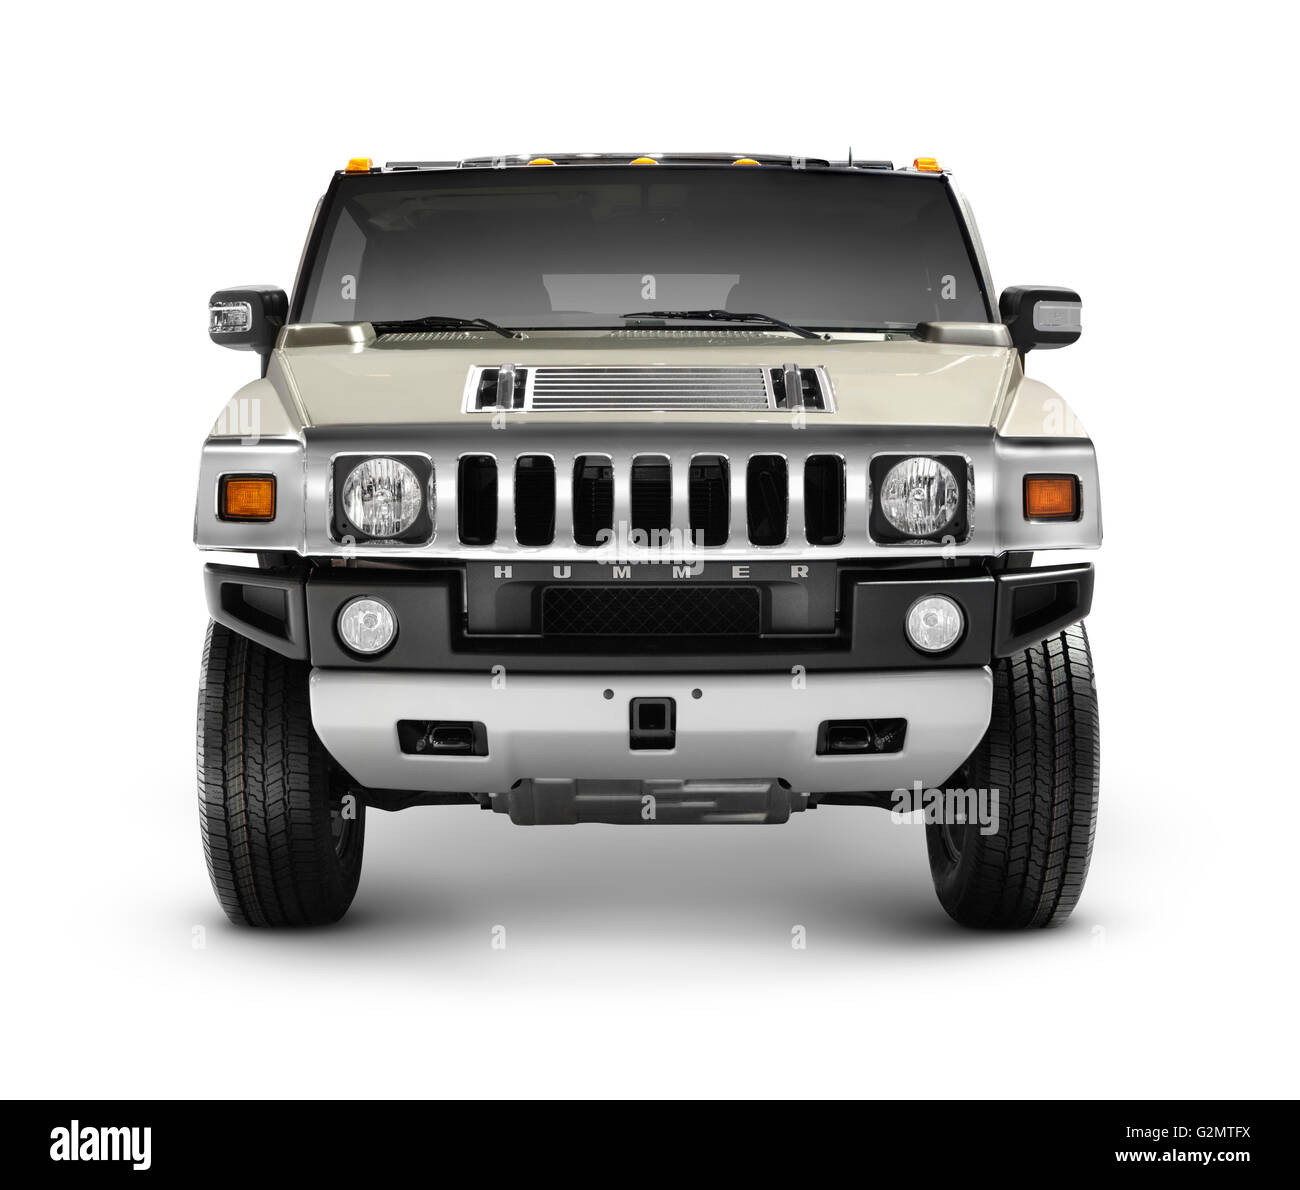 Hummer H2 full-size SUV - Stock Image